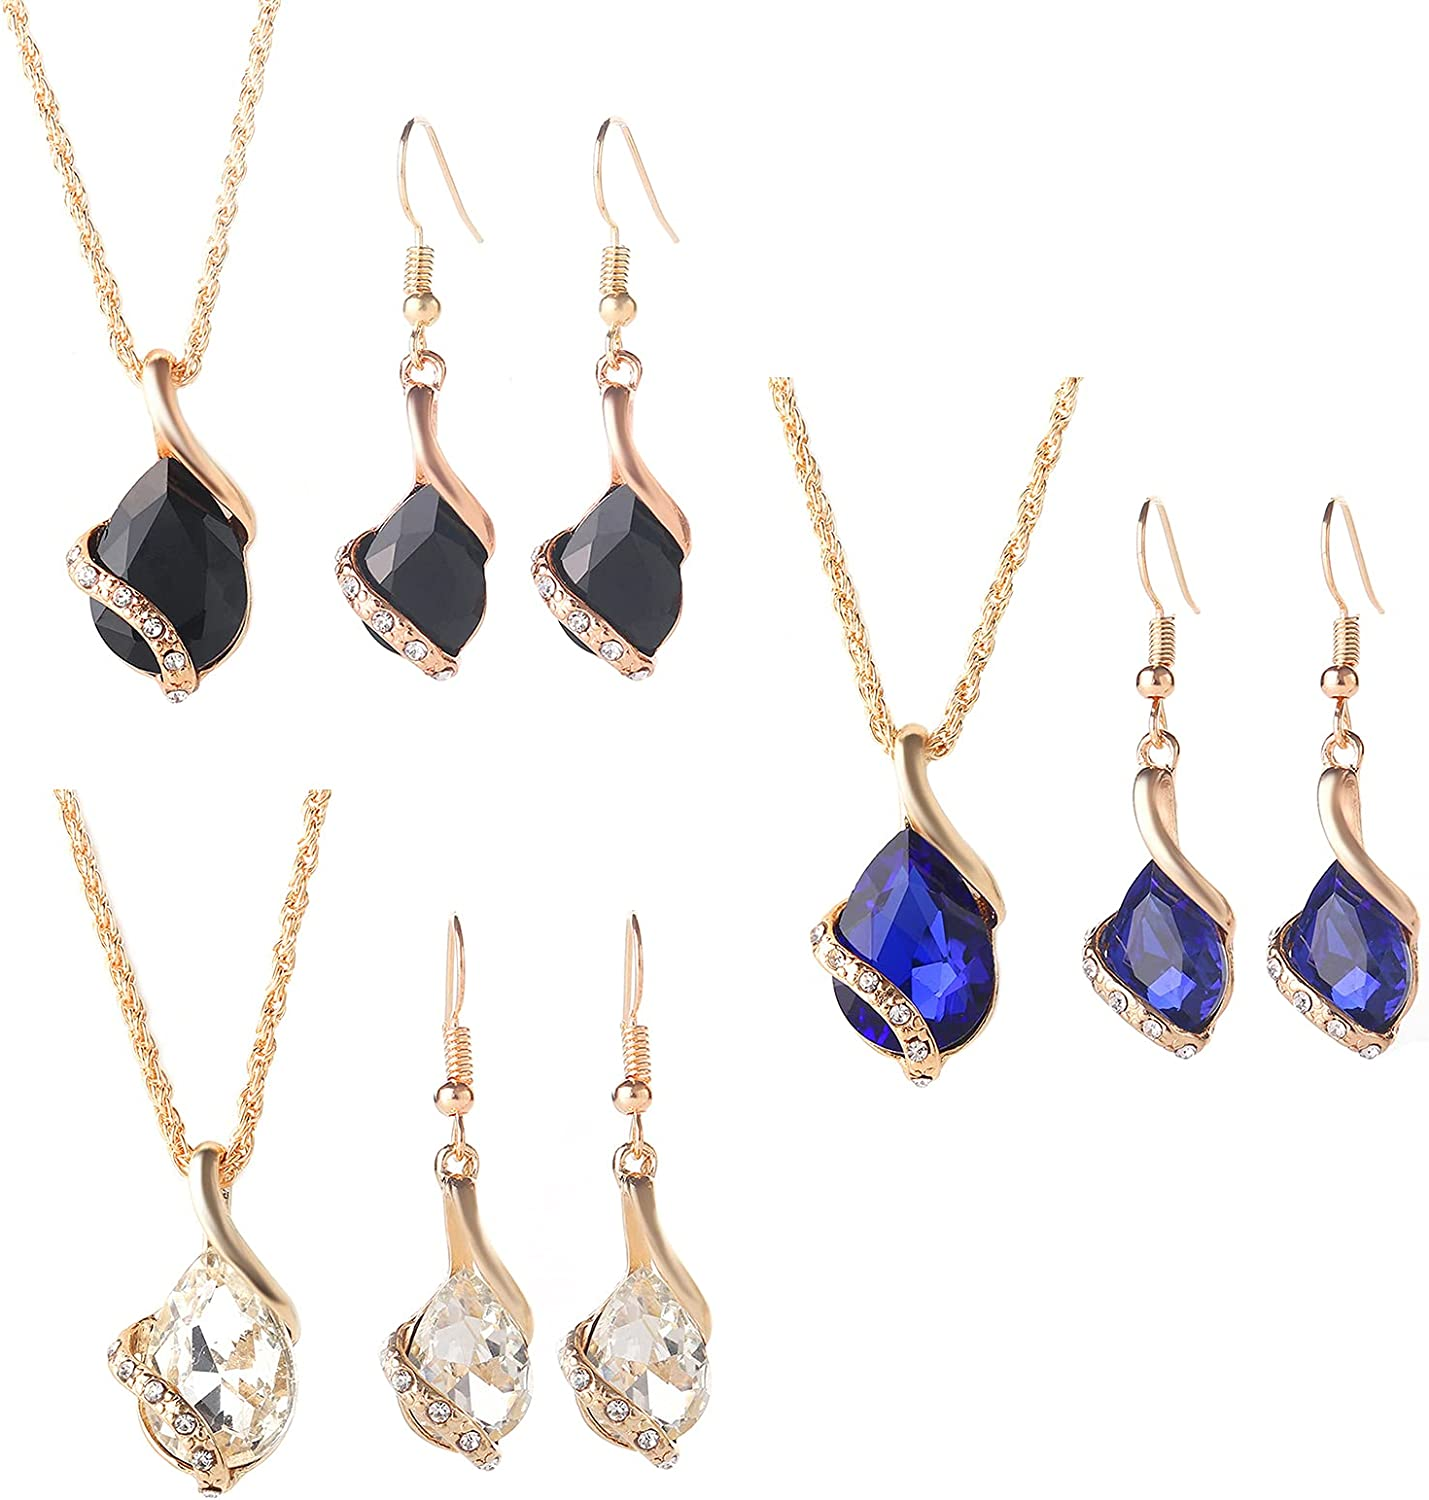 Rose Gold Teardrop Pendant Necklace Bridesmaid Wedding Earring Costume Jewelry Sets for Woman